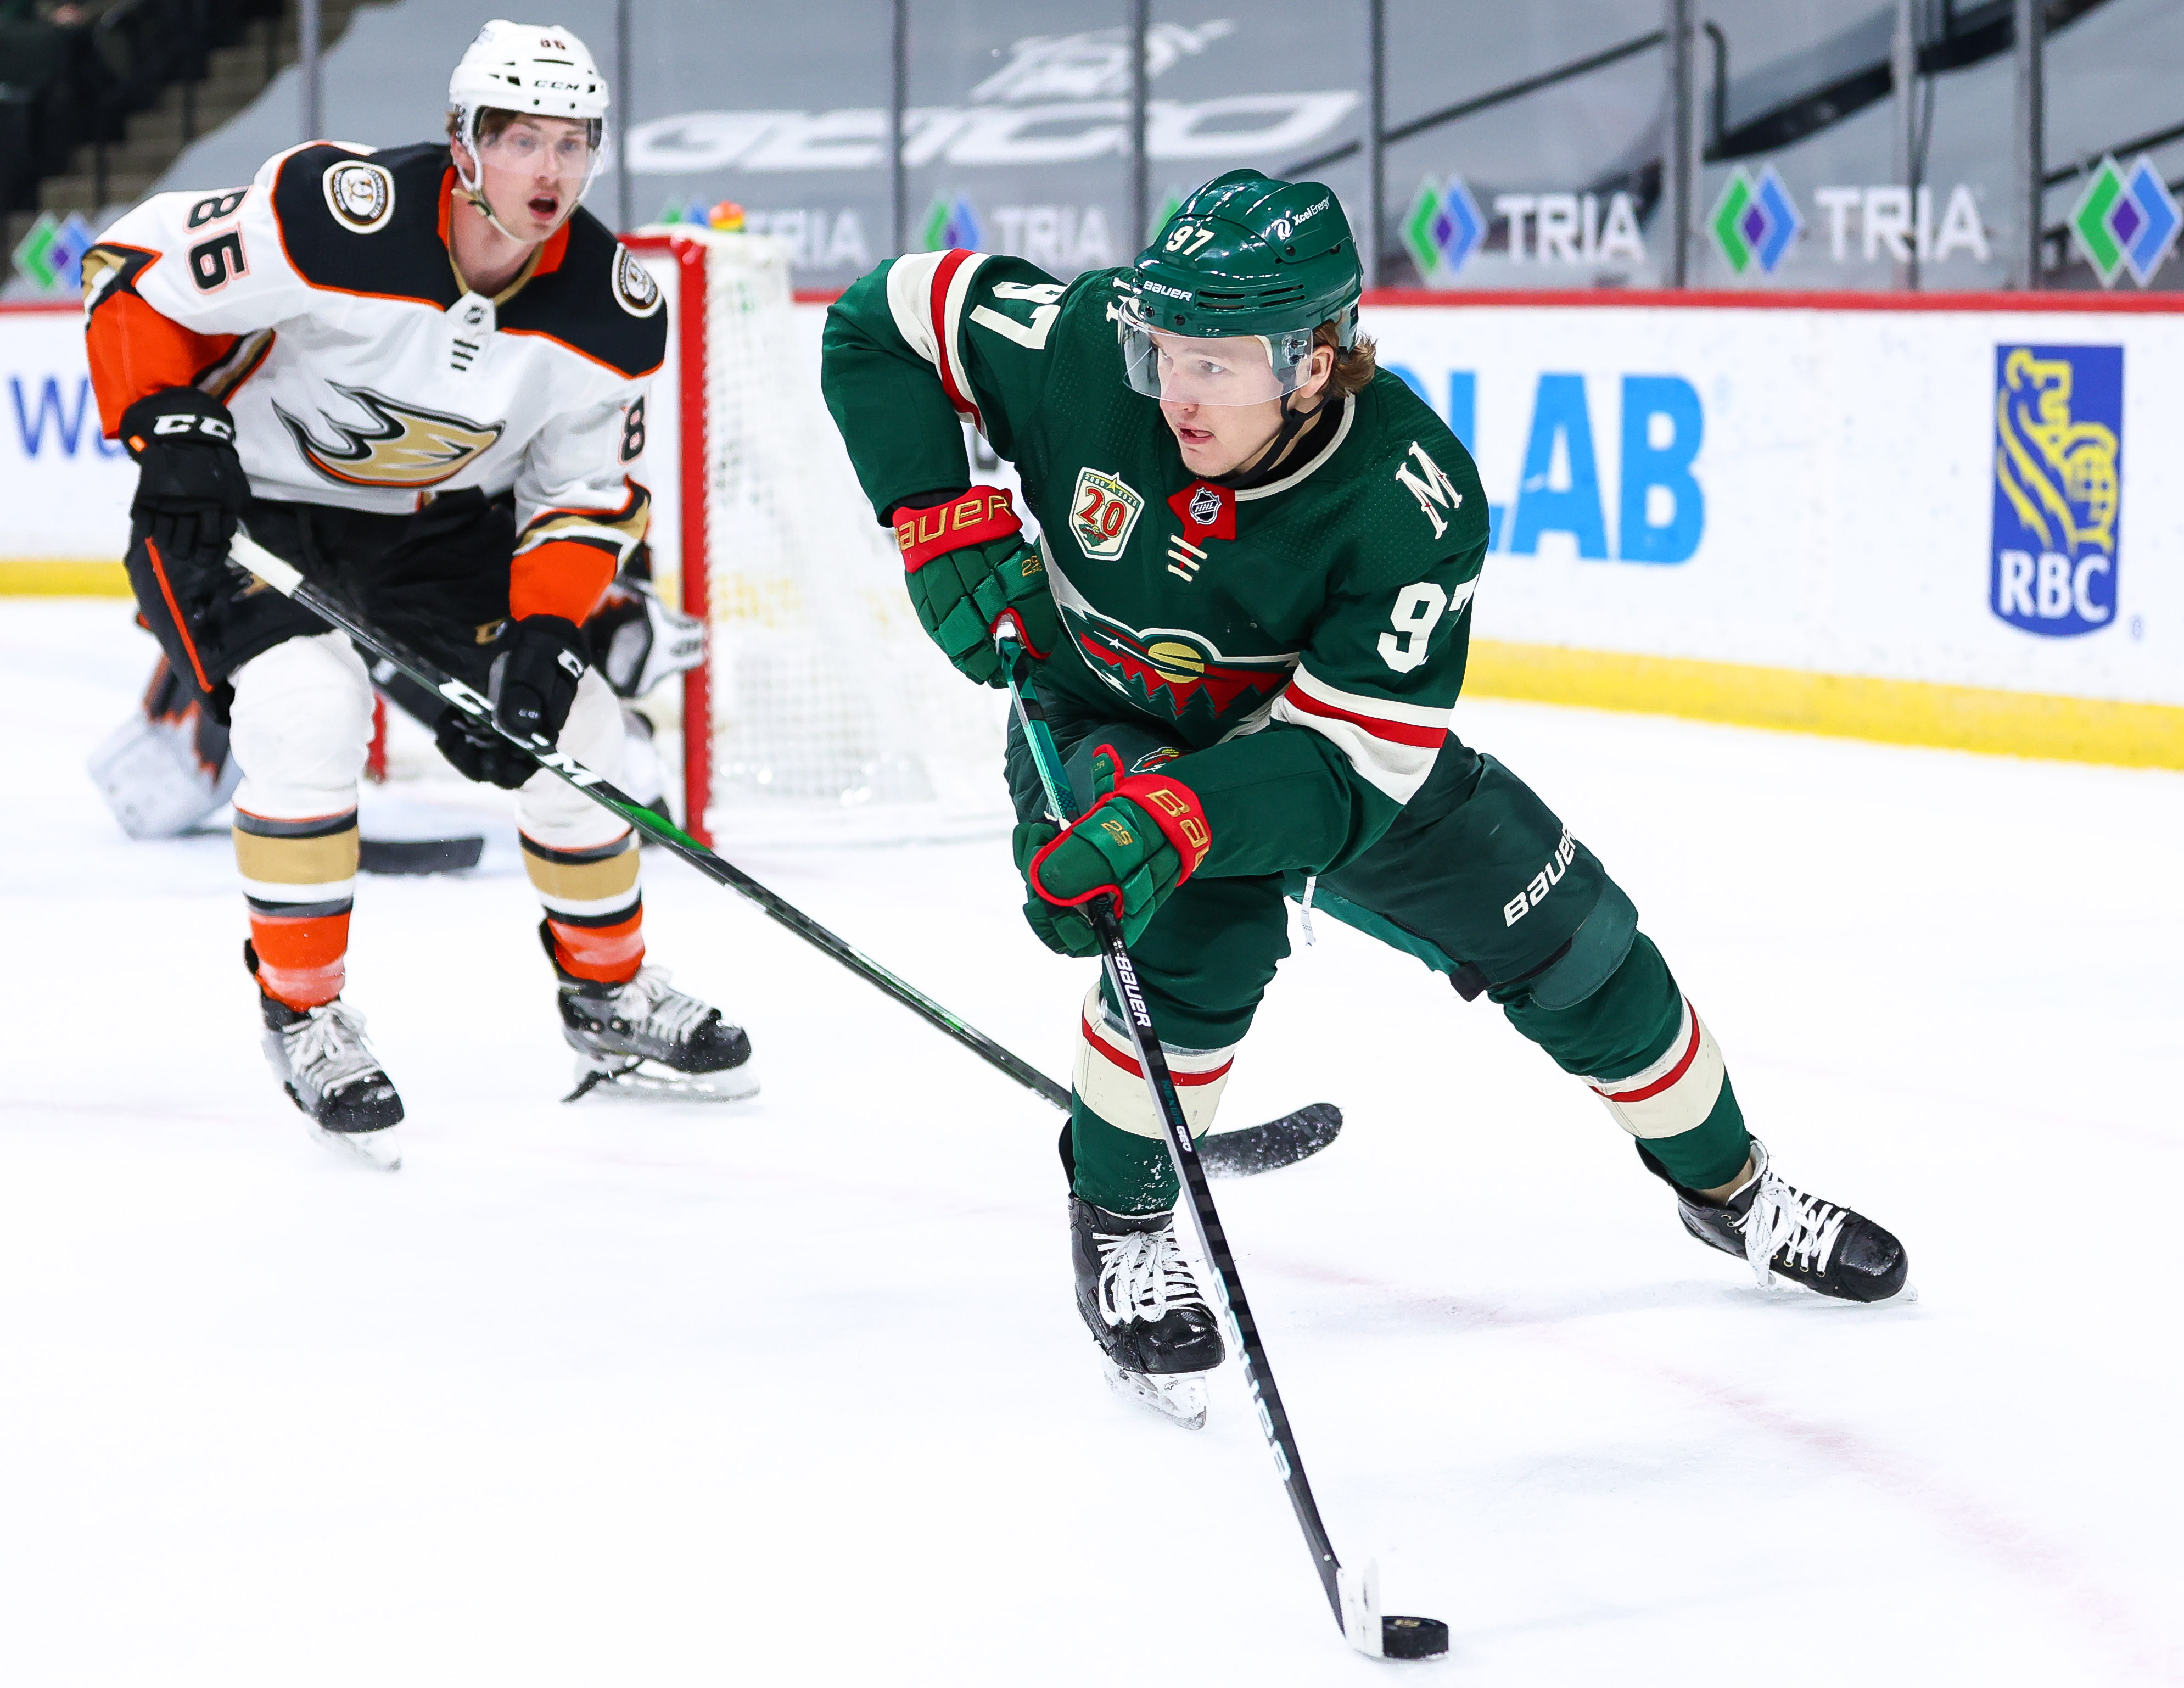 2021 Minnesota Wild Draft Preview: Sleepers & Steals